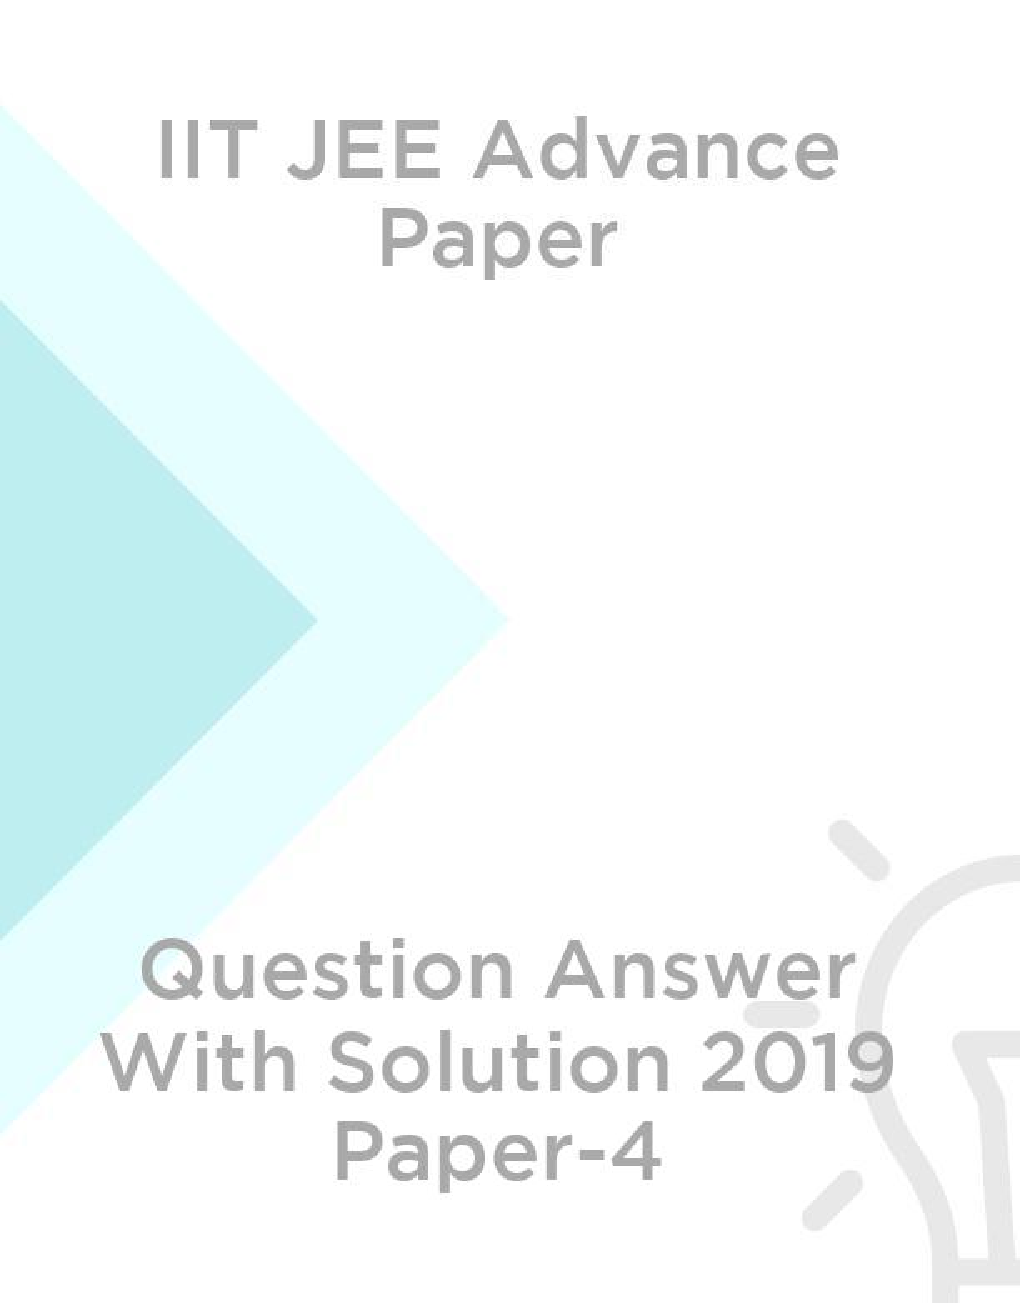 IIT JEE Advance Paper Question Answer With Solution 2019 Paper-4 - Page 1